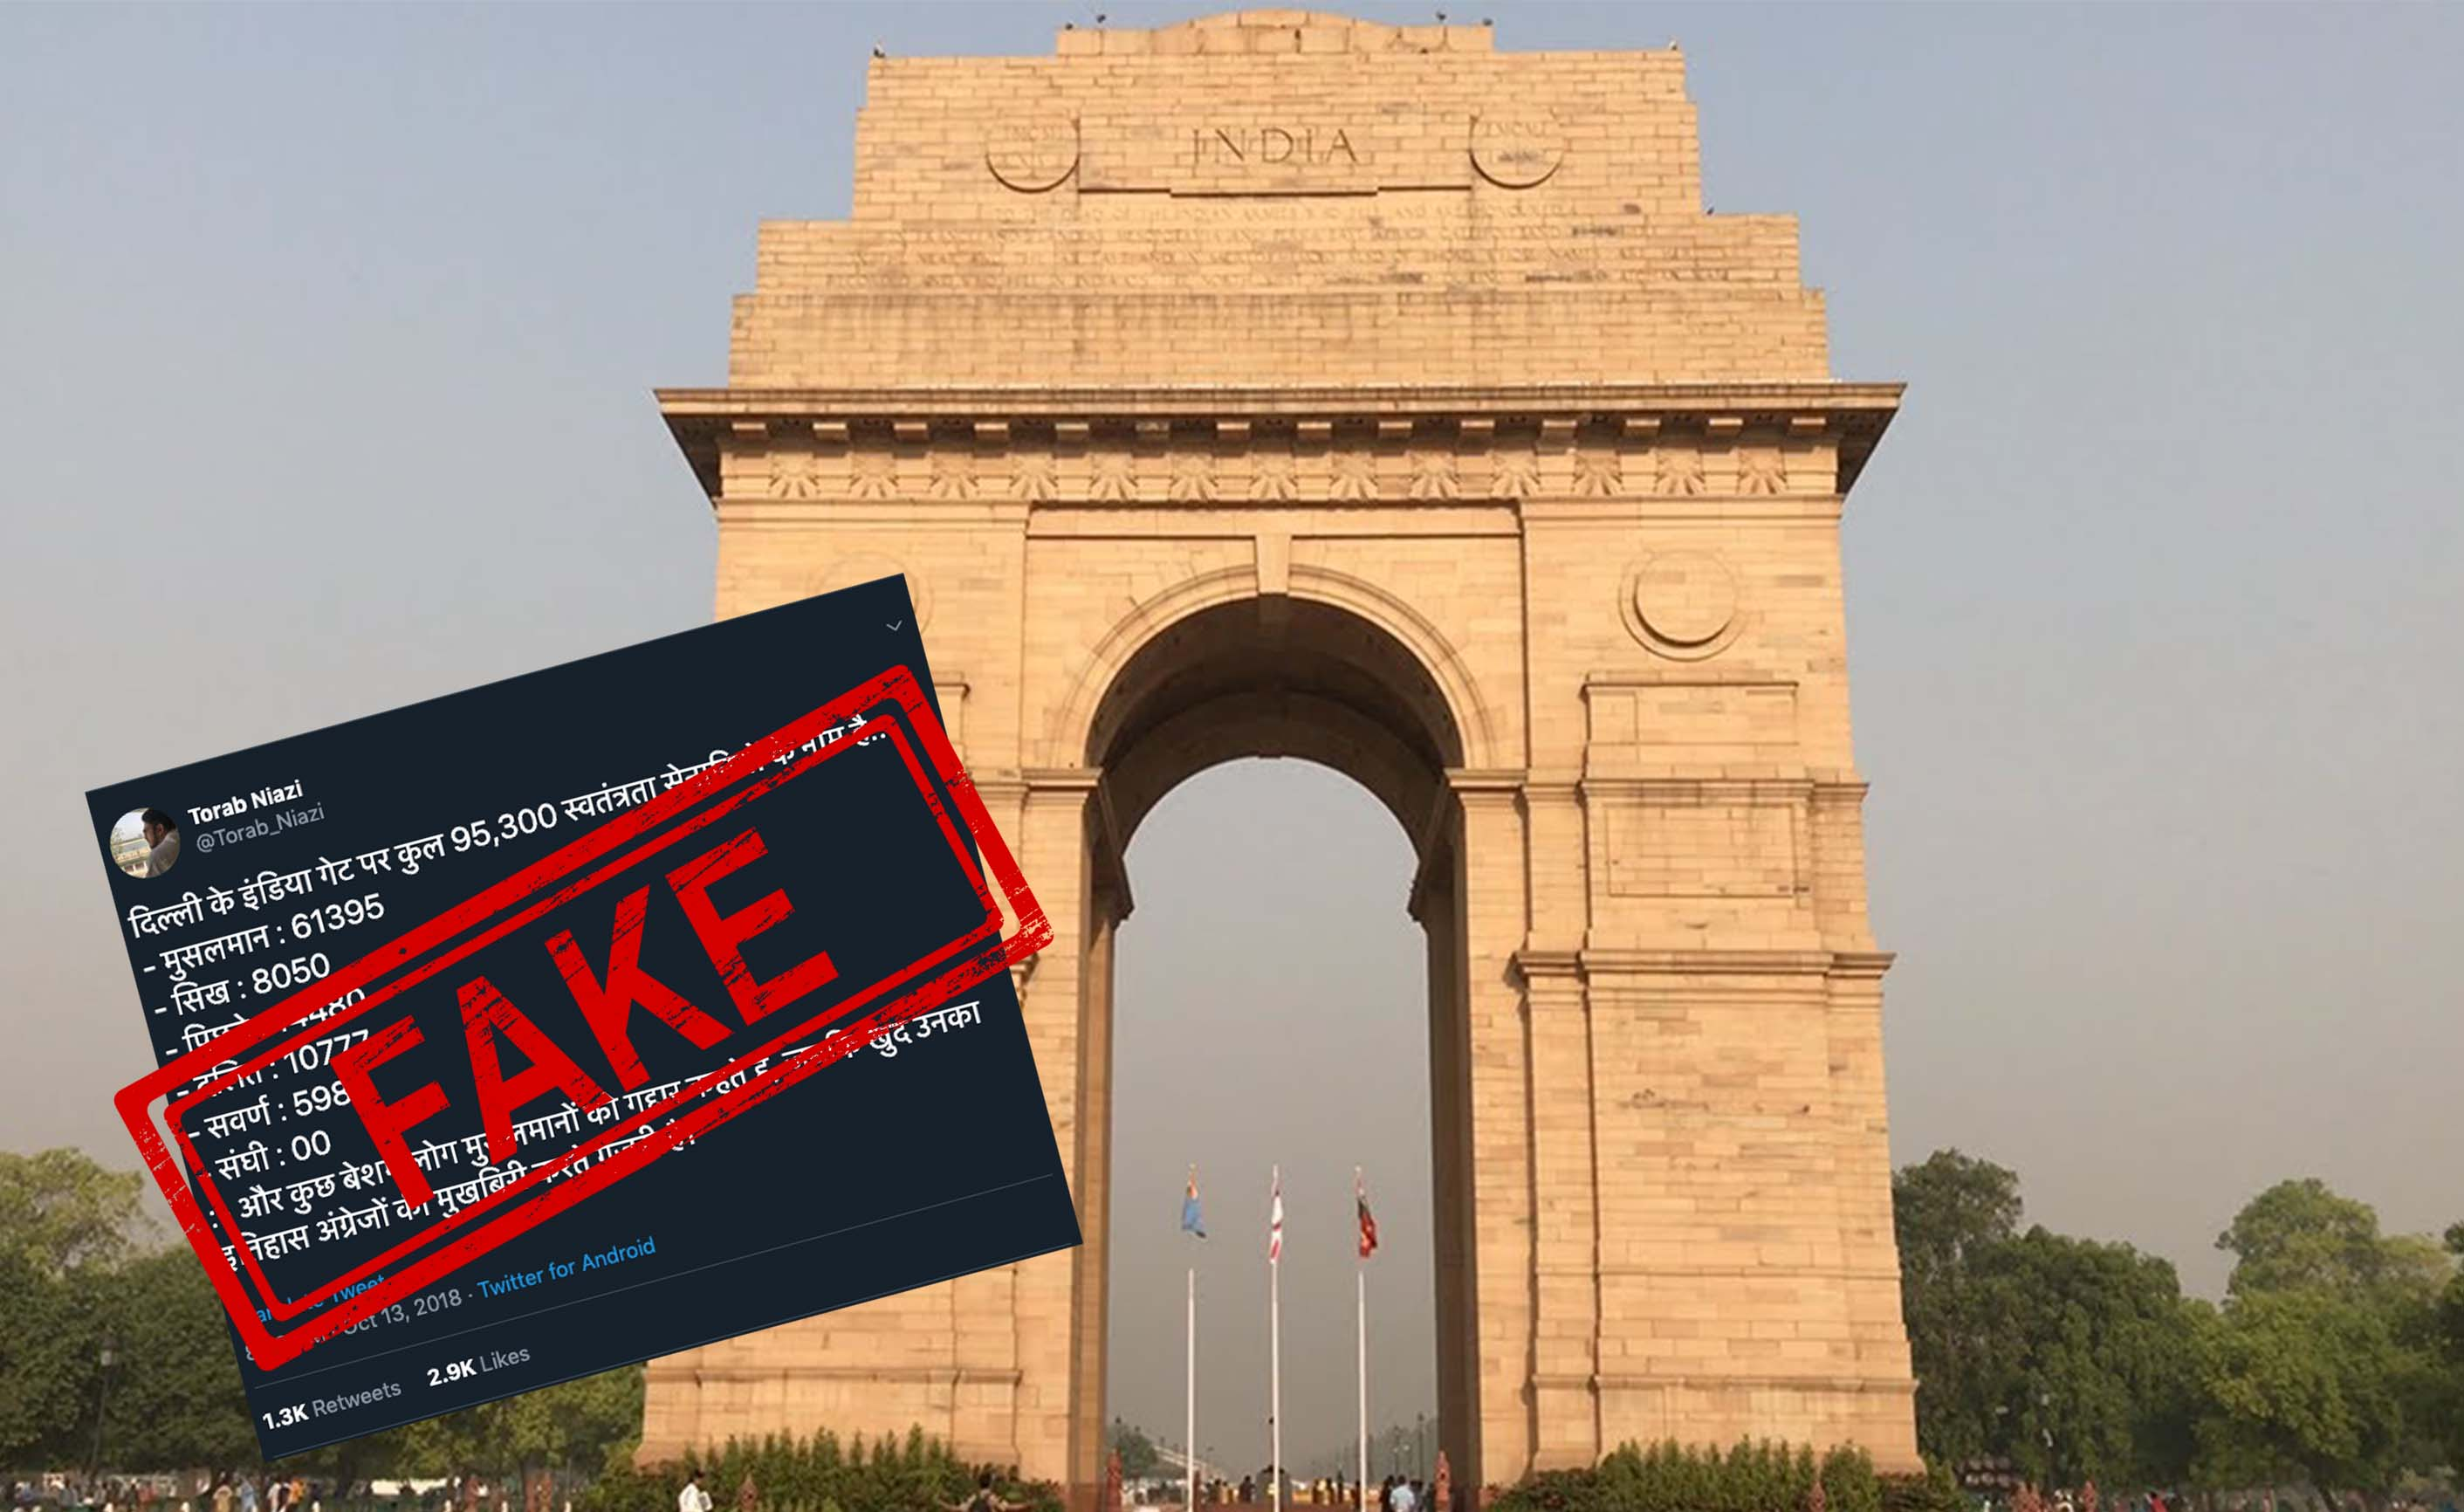 India Gate, War Memorial, NewsMobile, Mobile, News, India, Fact Check, Fact Checker, FAKE